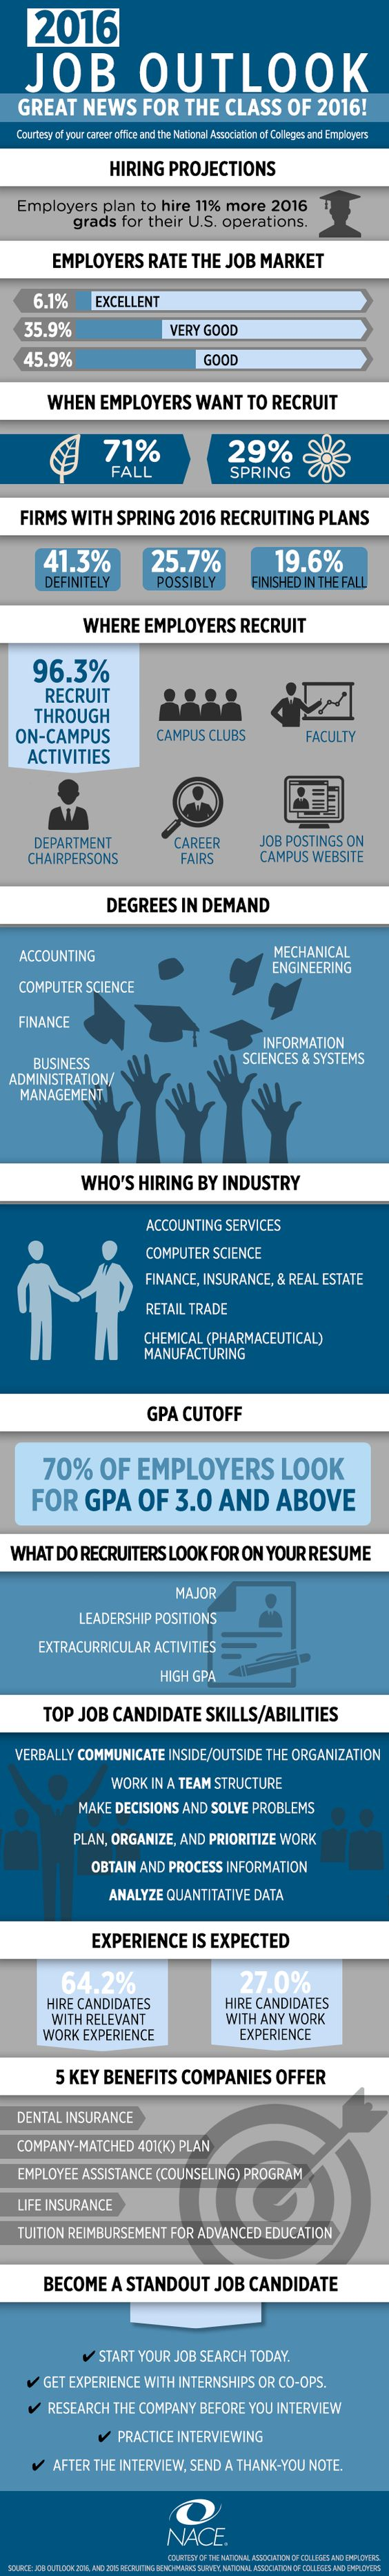 what s the job market going to be like for the class of 2016 here what s the job market going to be like for the class of 2016 here are